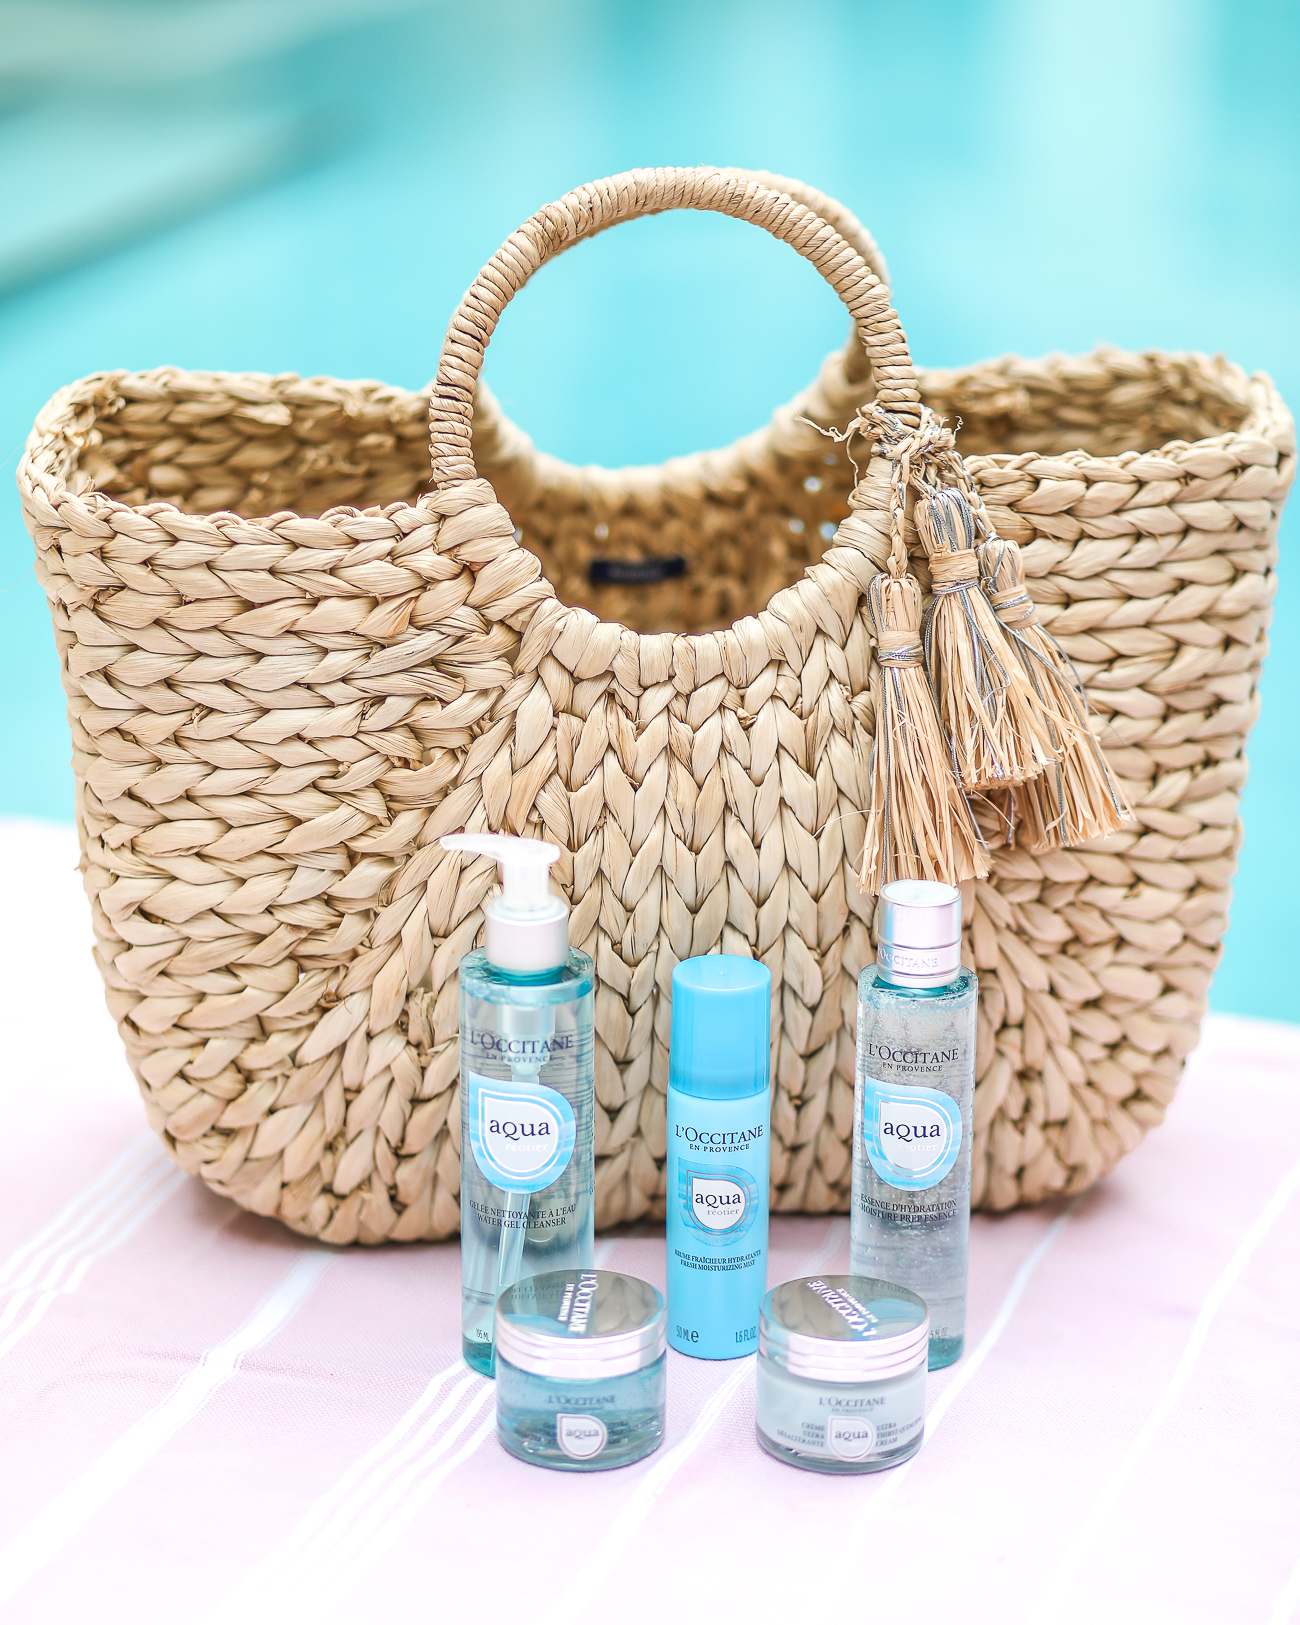 L'Occitane Aqua Réotier Skin Care Collection Easy Summer skincare Hat Attach Straw Tote